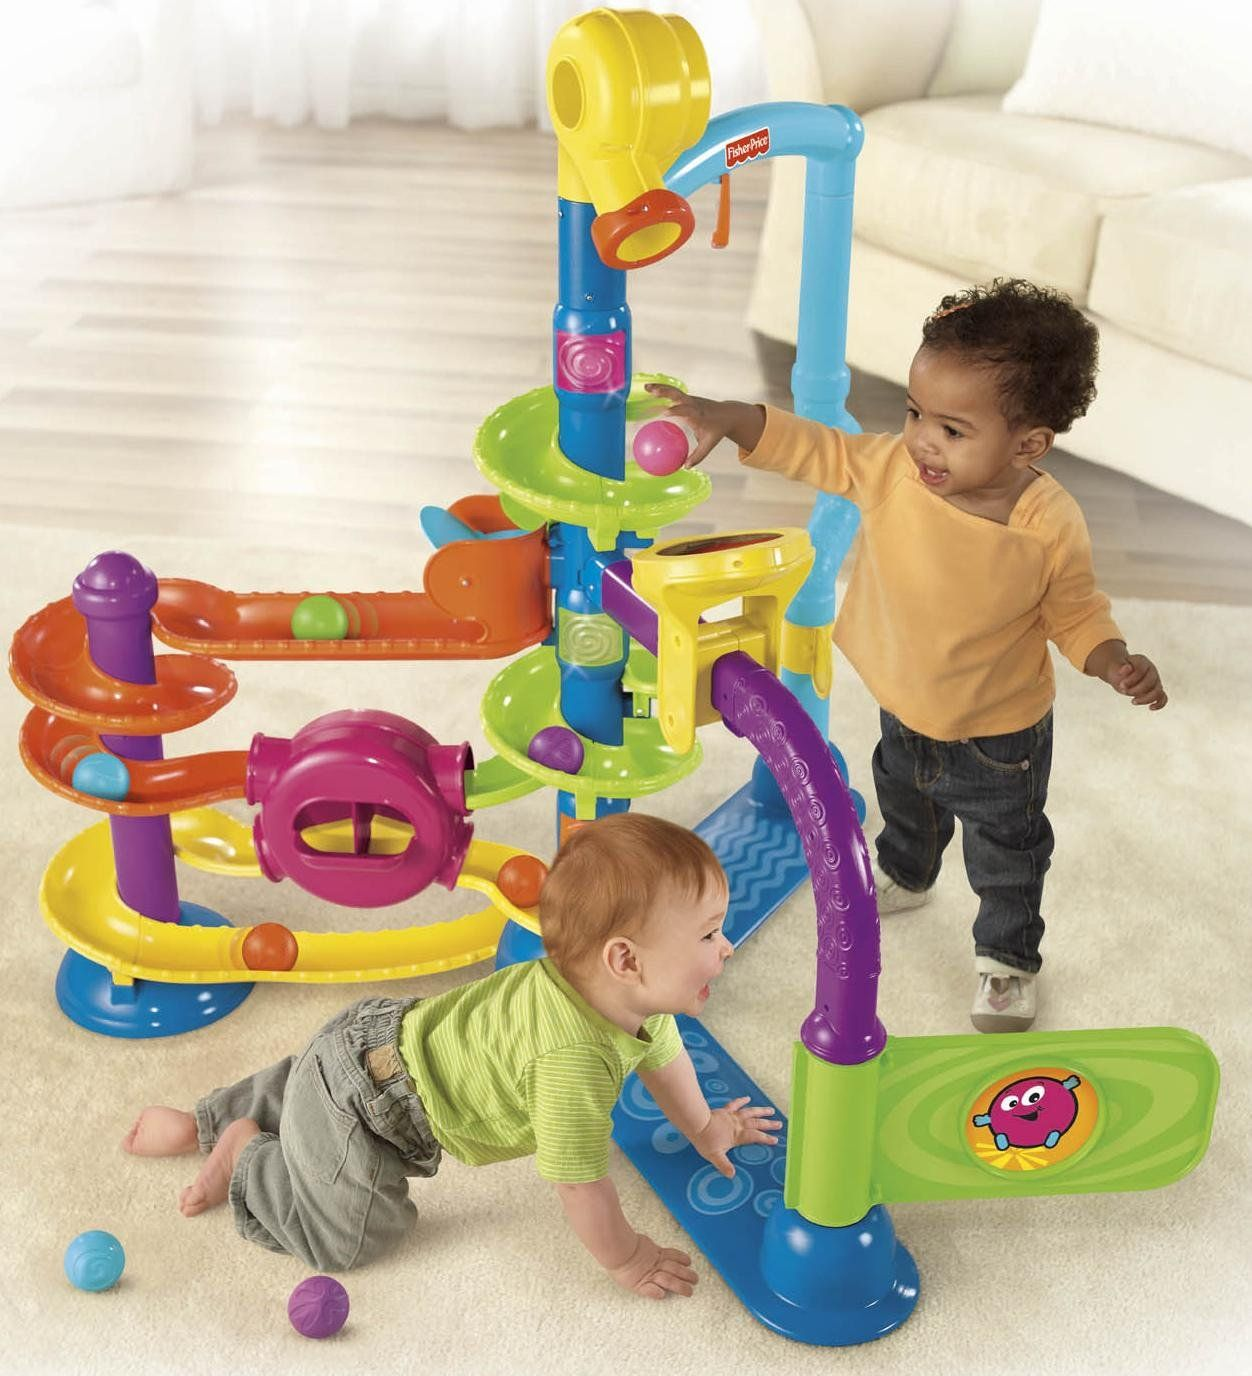 Best Ts And Toys For 1 Year Old Boys